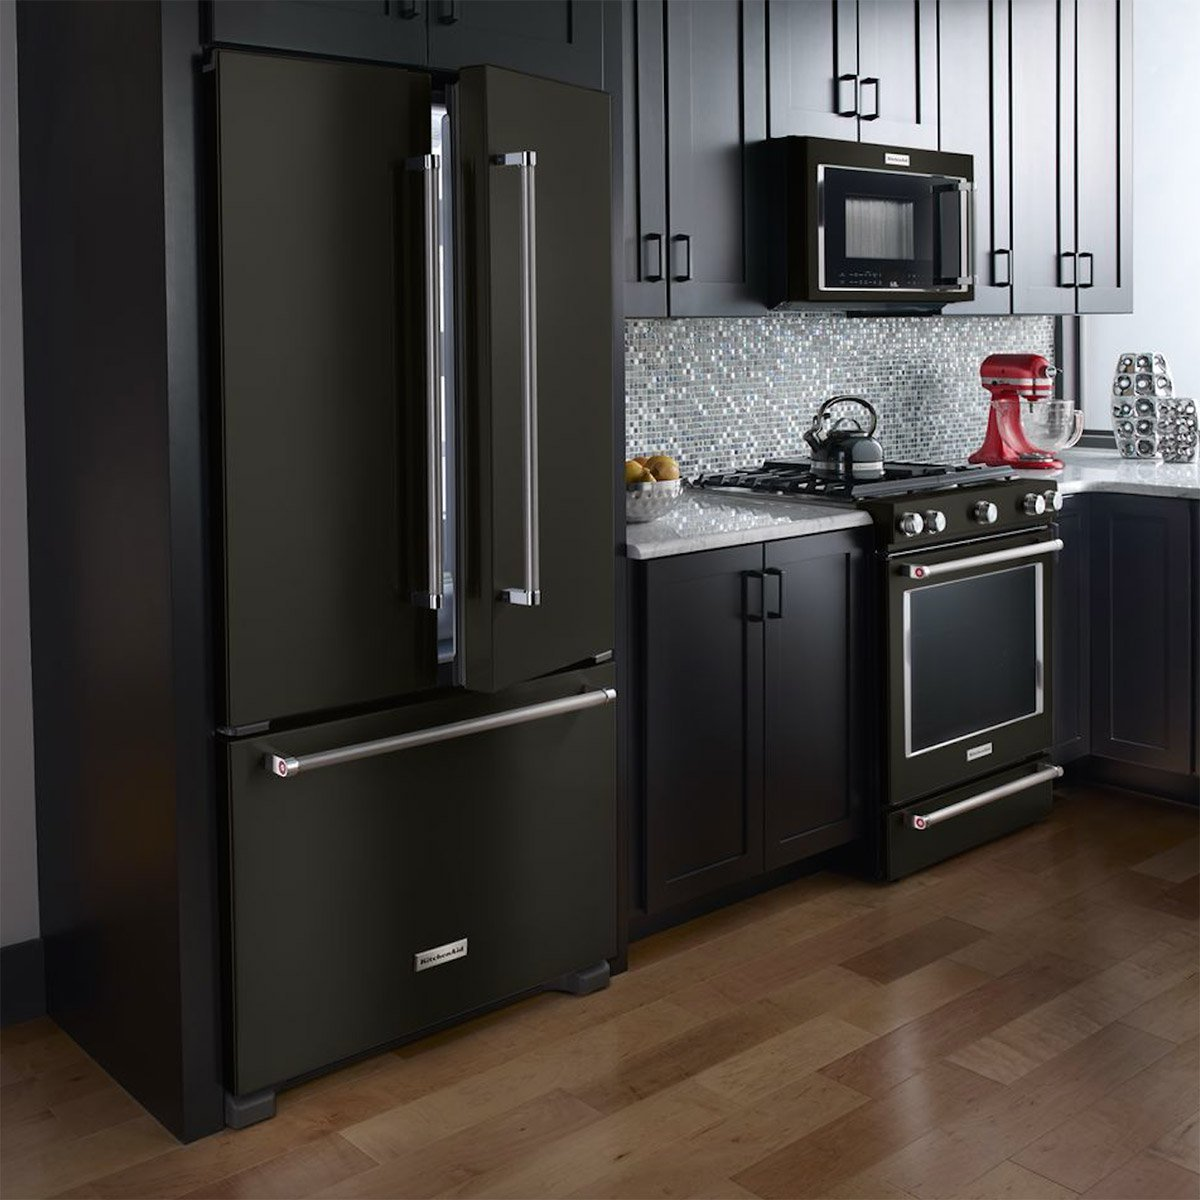 Debbie jacobs what 39 s hot in interior design trends for 2018 for What s new in kitchen design